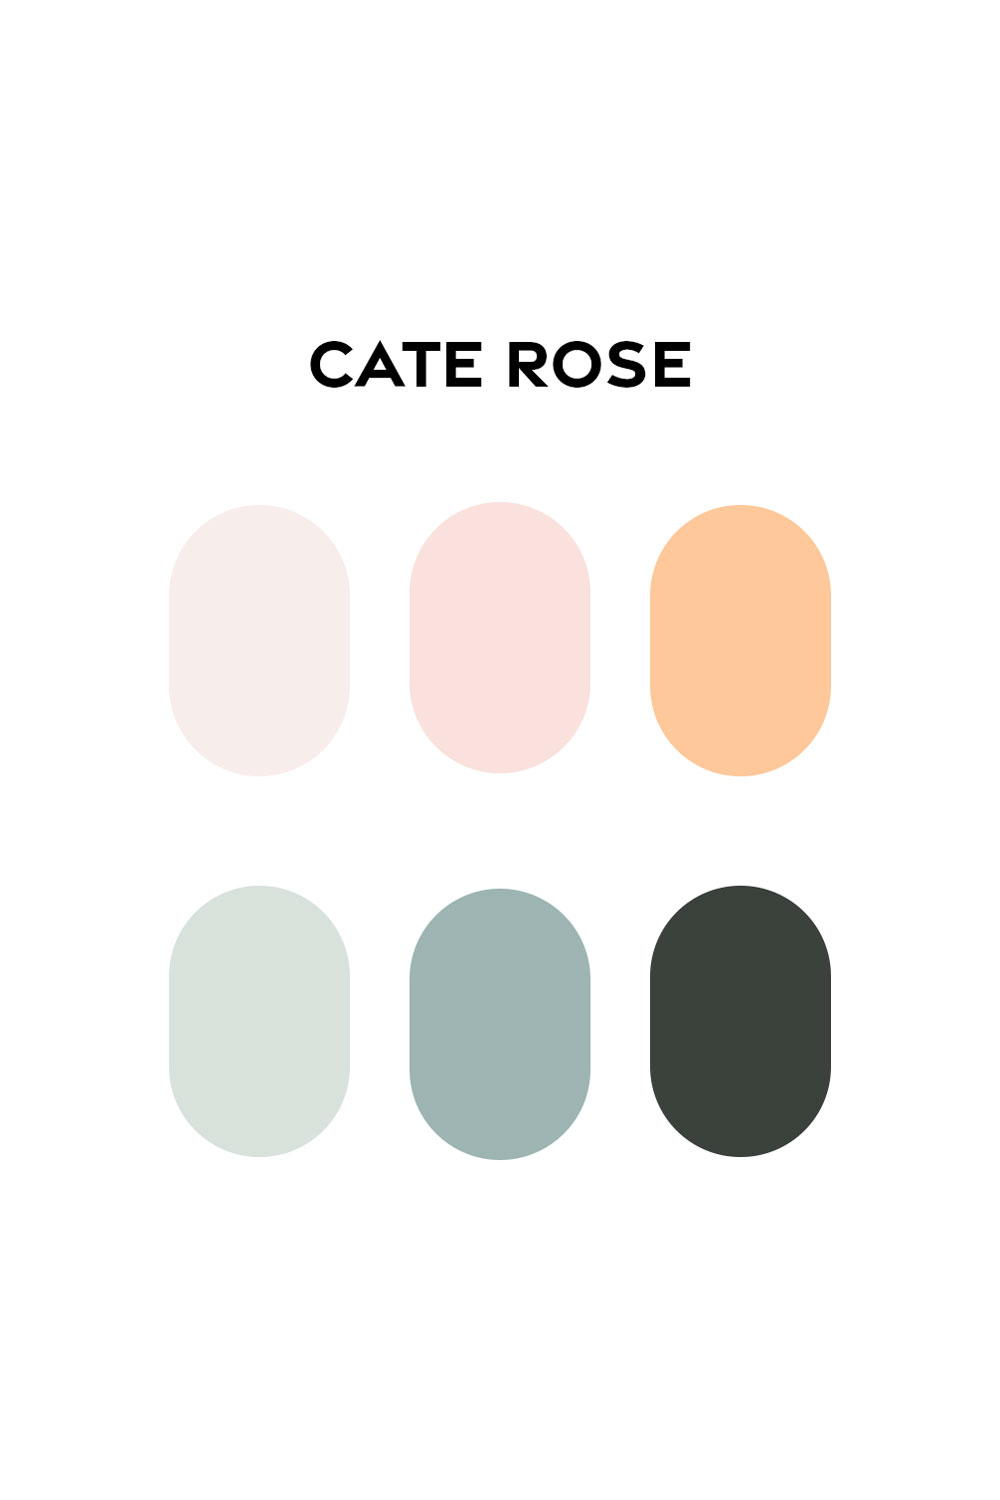 Cate Rose Brand Color Swatches by Everything Here Now